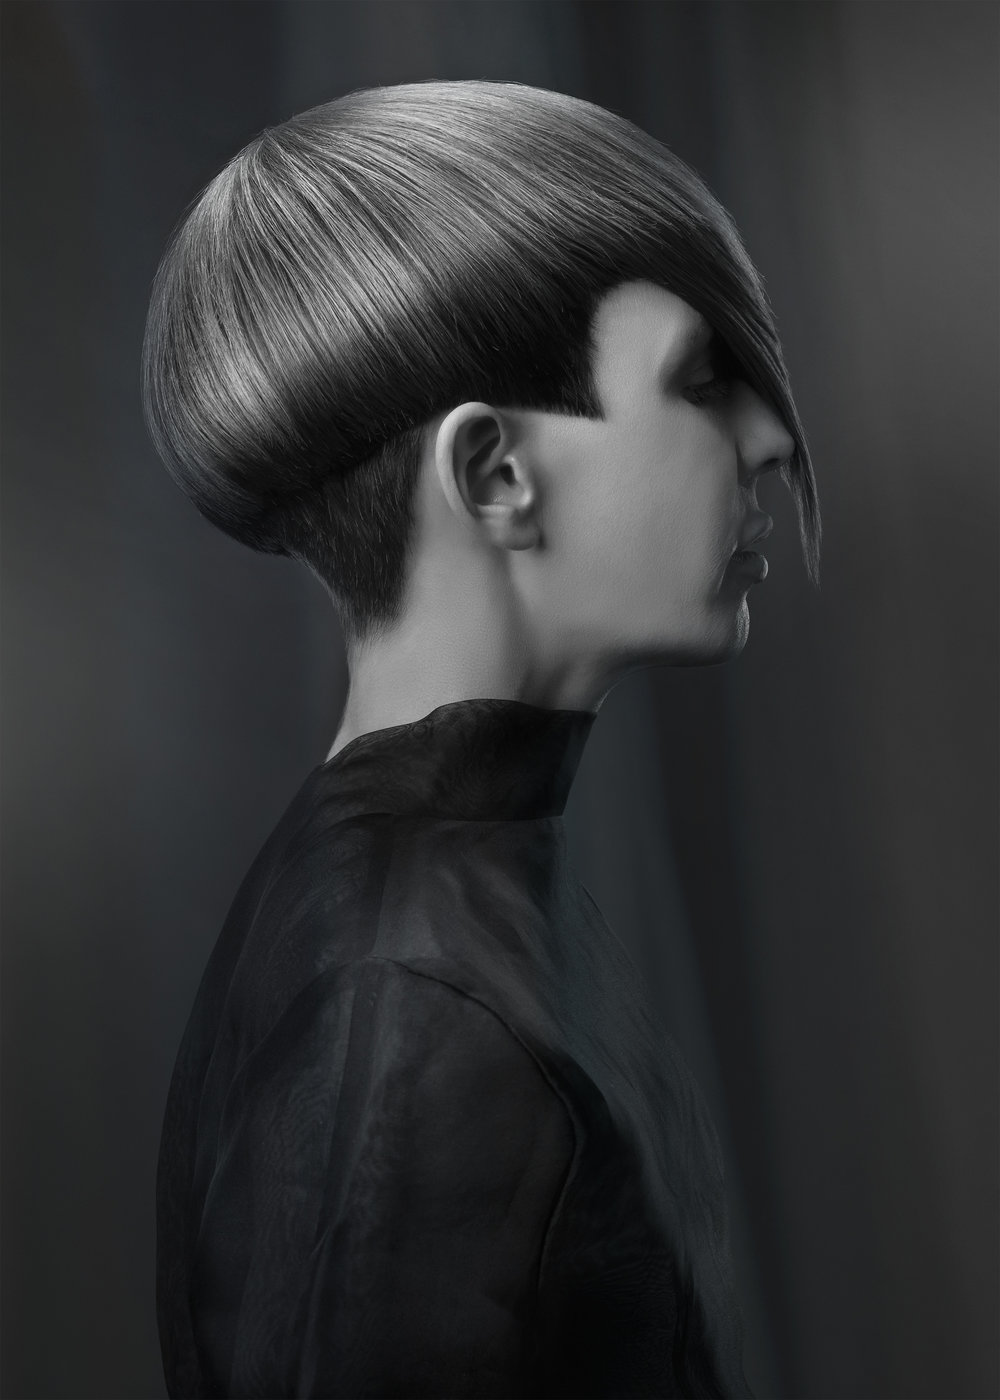 Hair by Michael Haase